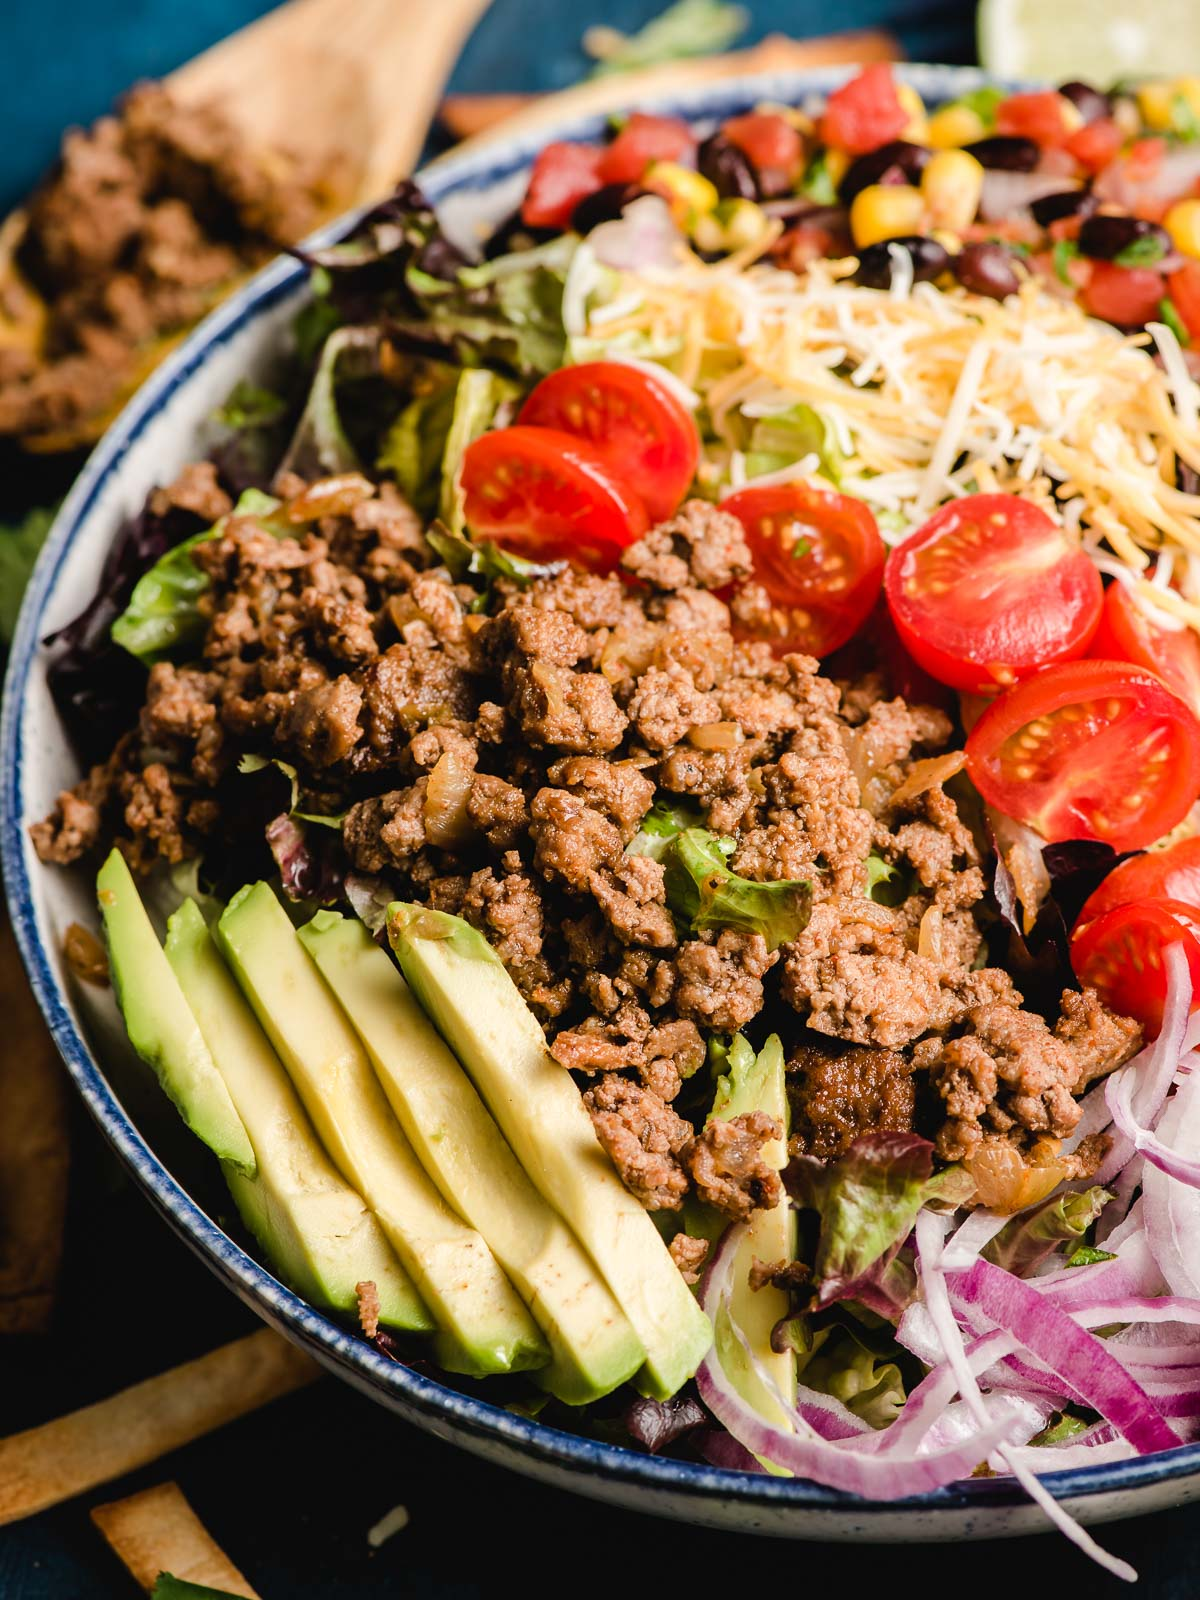 A bowl of ground beef taco salad is served with a wooden spoon.